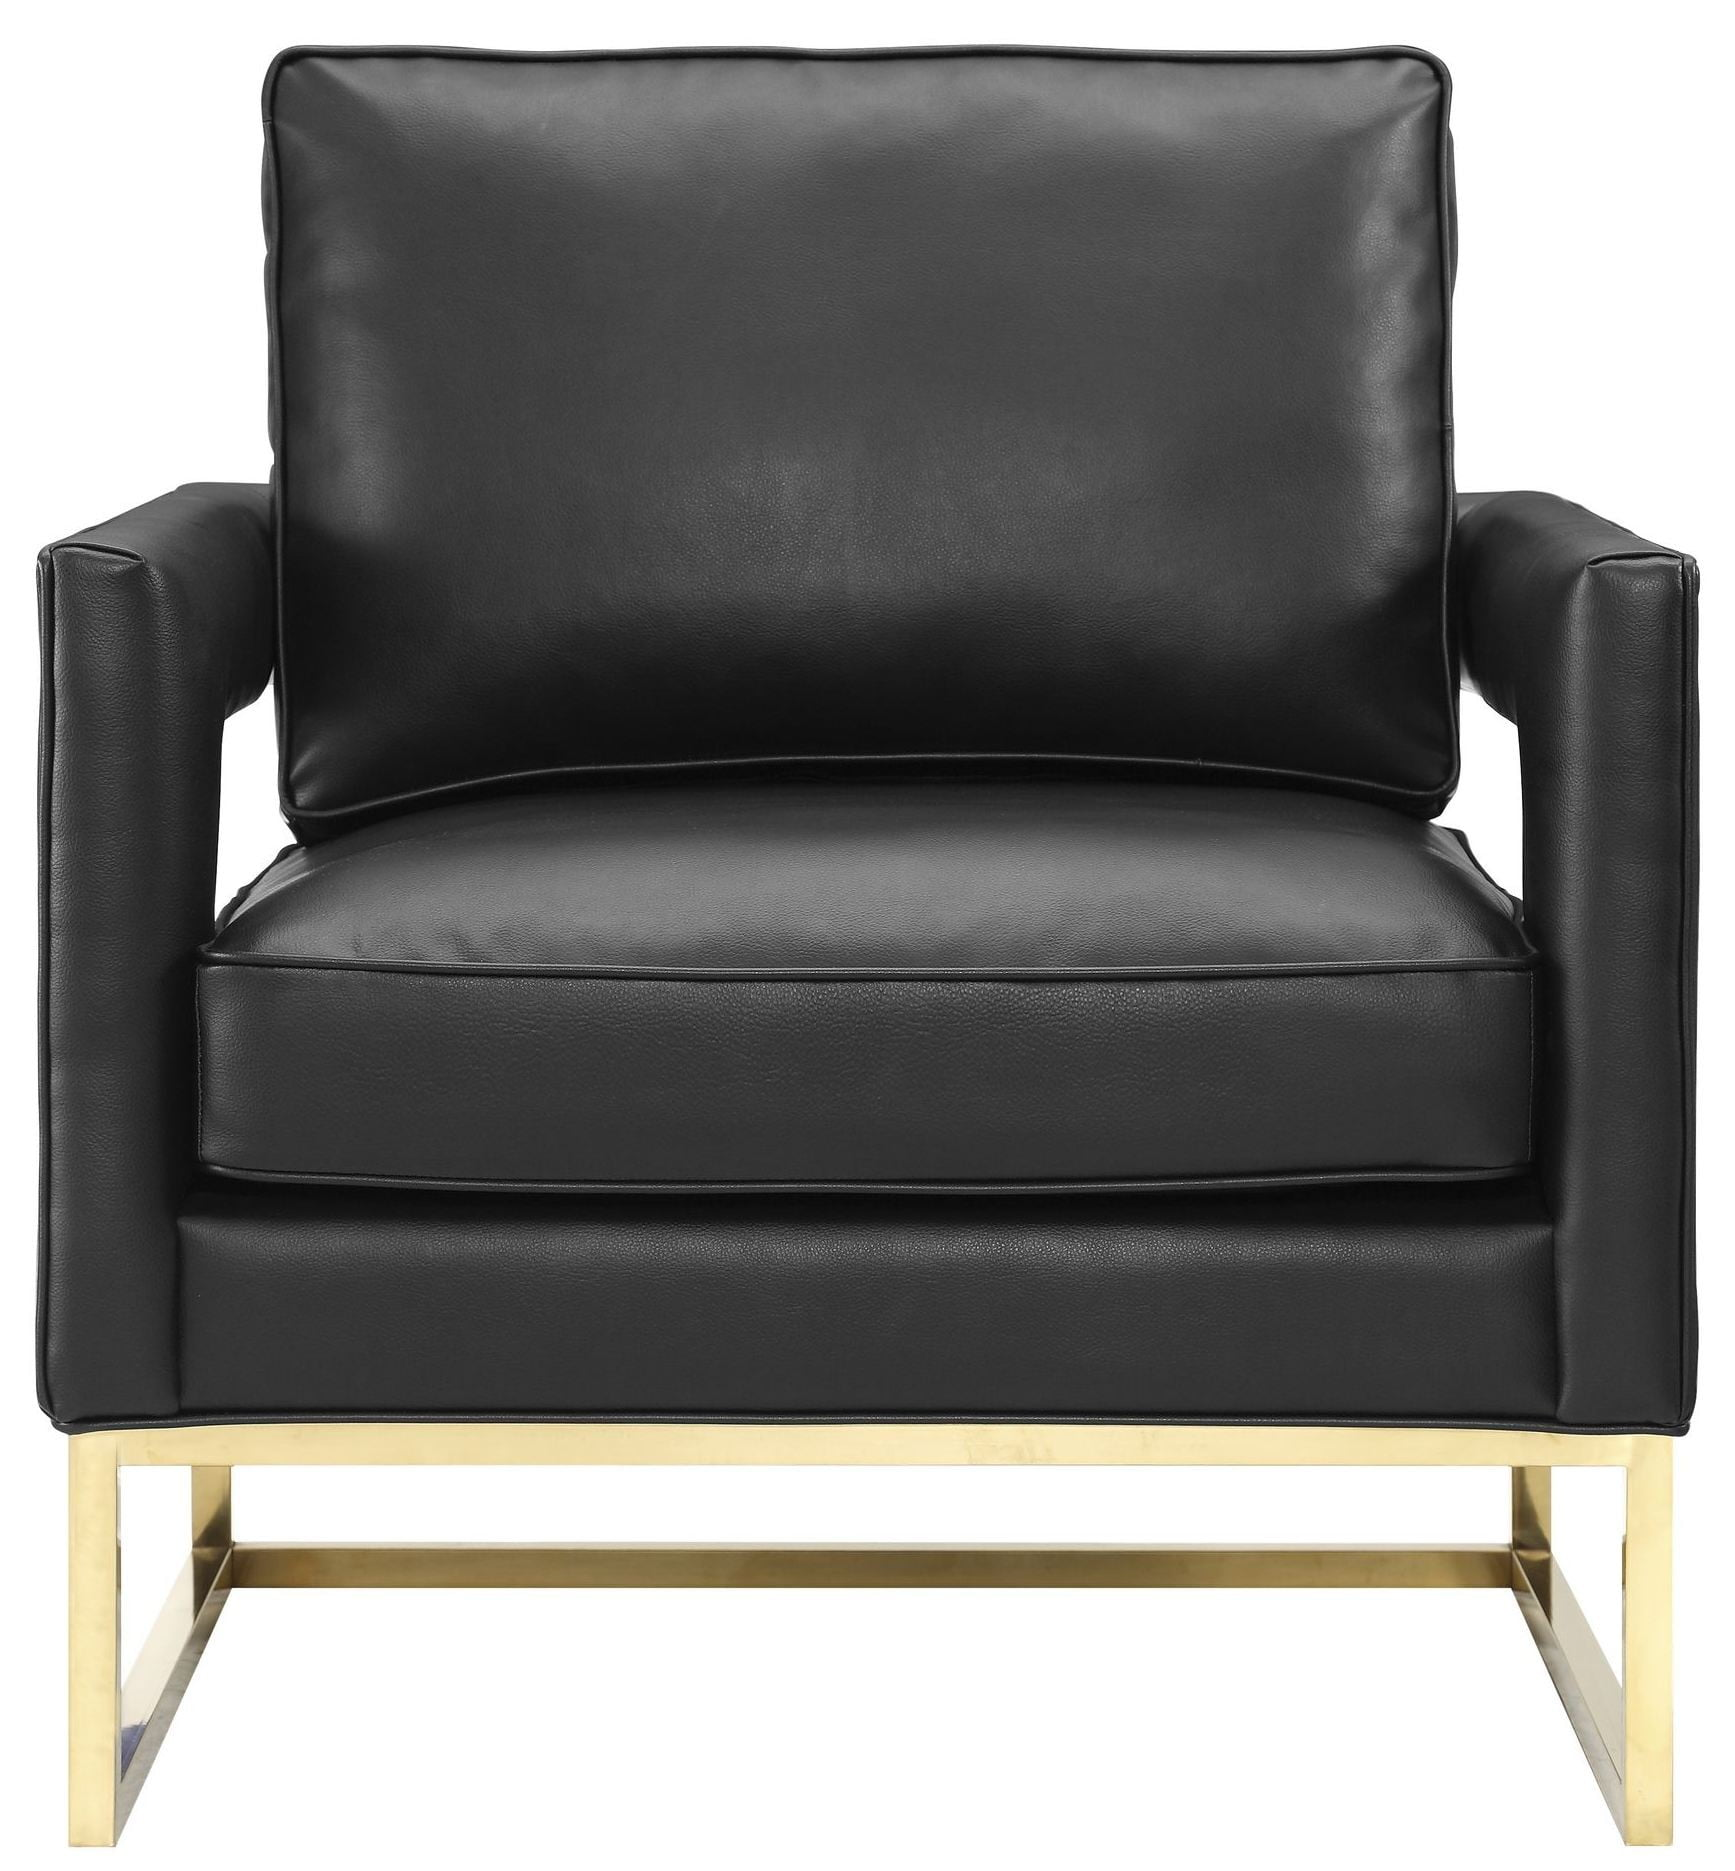 Avery Black Leather Chair From Tov Coleman Furniture